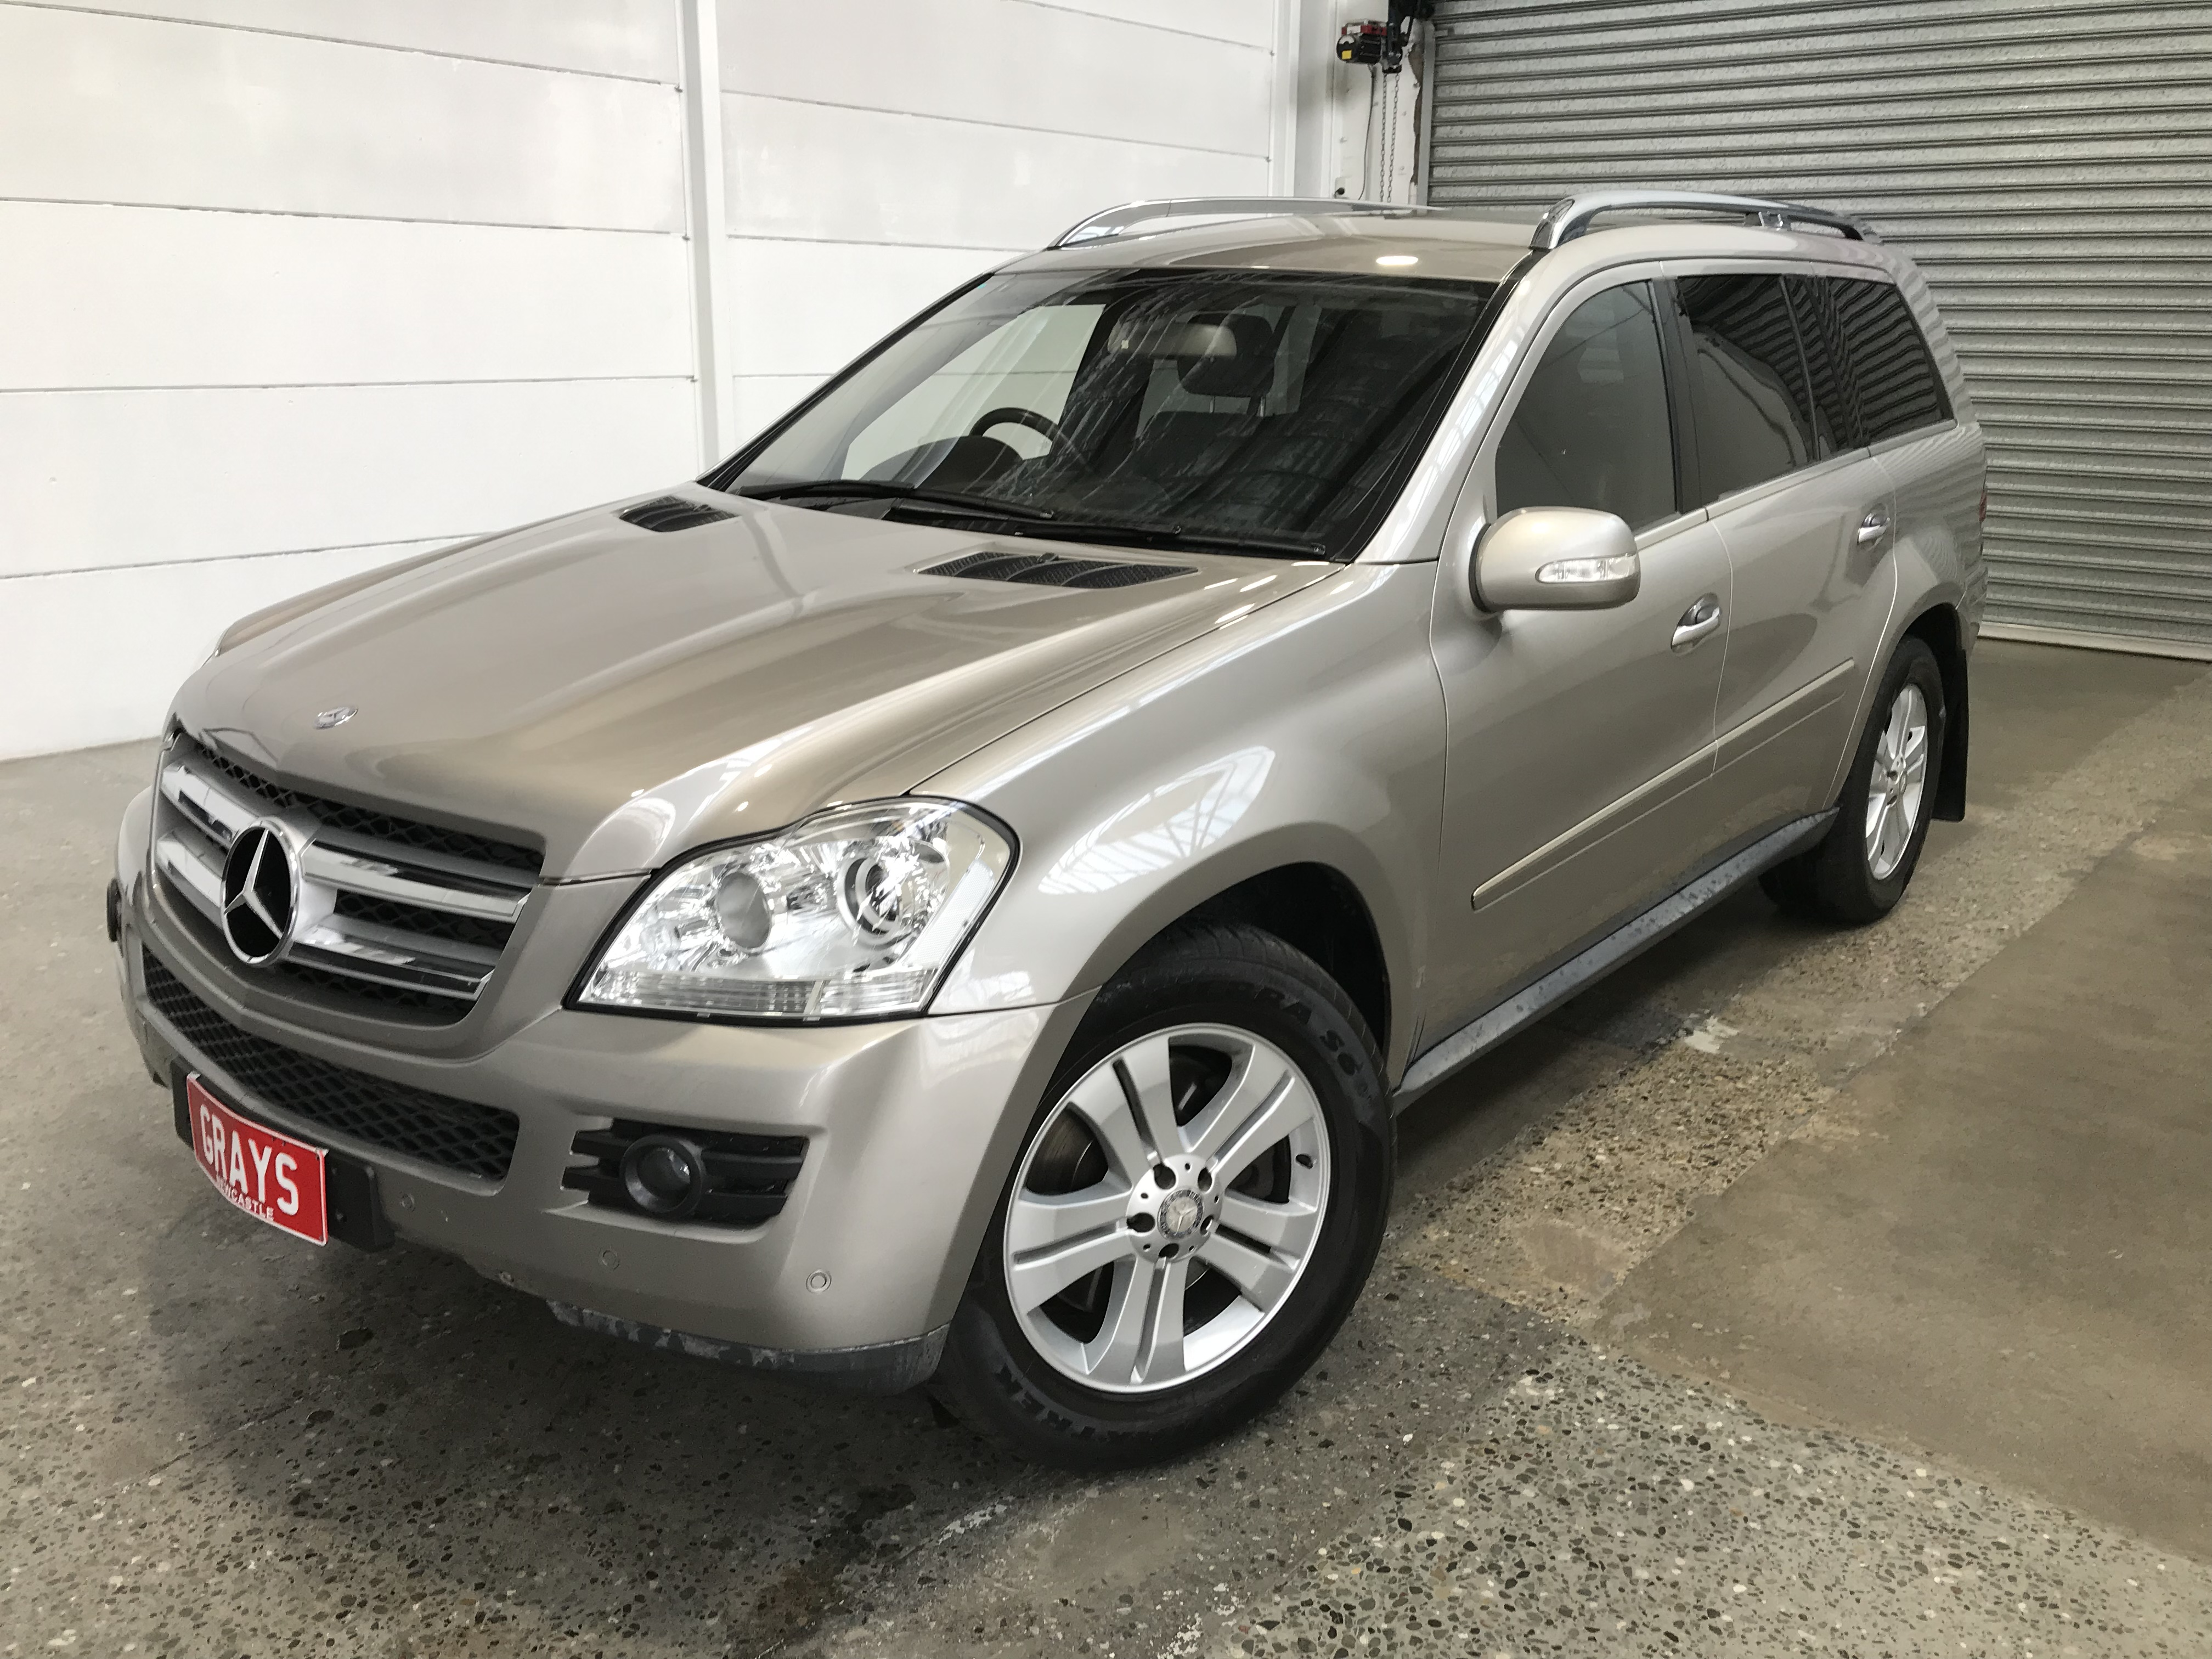 2007 Mercedes Benz GL 320 CDI X164 Turbo Diesel Automatic 7 Seats Wagon